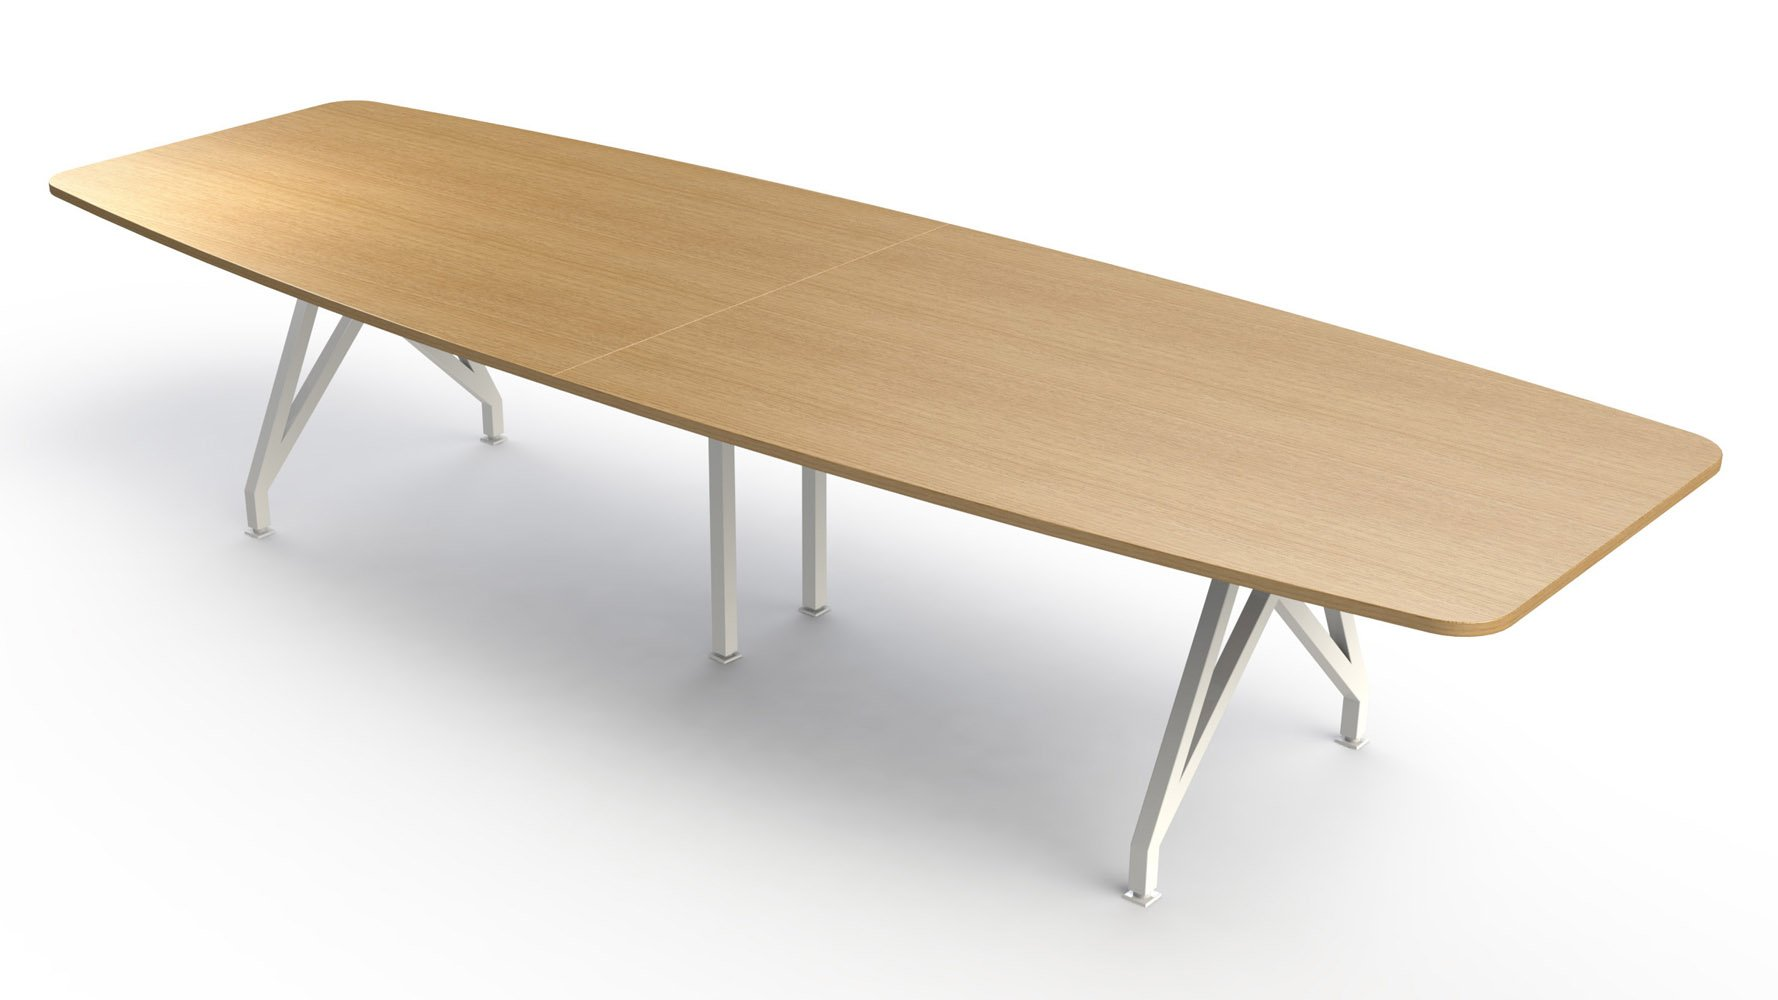 KAYAK Conference Table Zuri Furniture - 12 foot boat shaped conference table